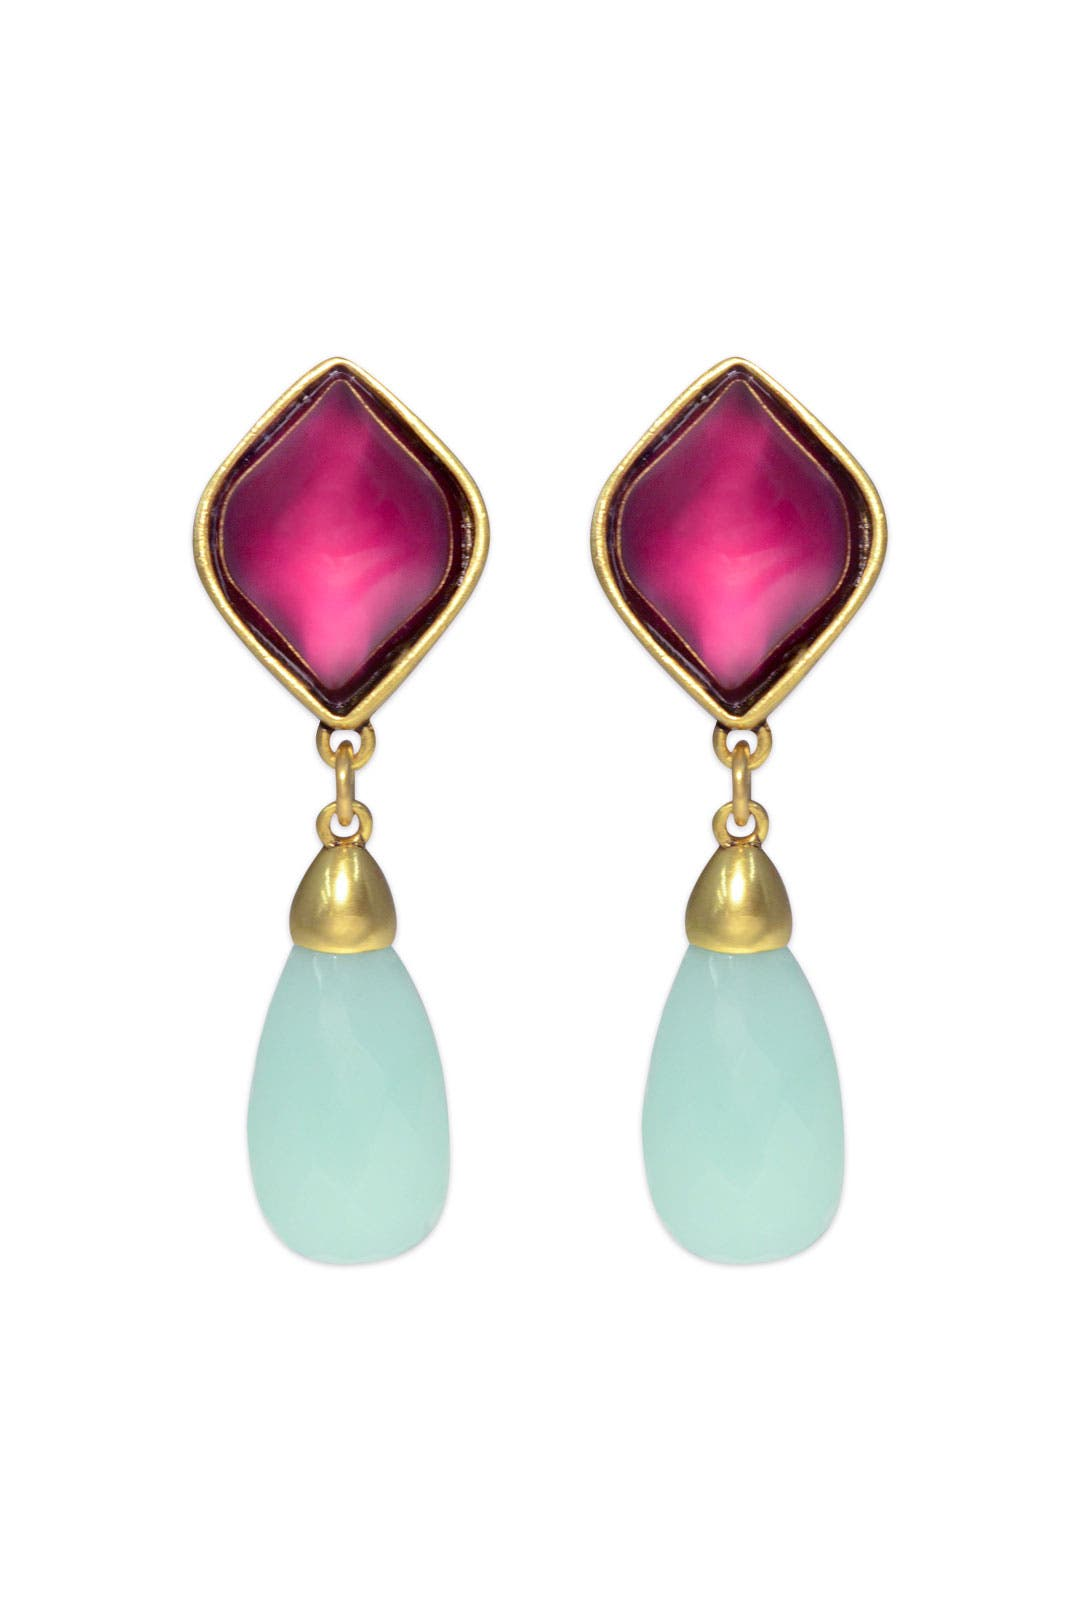 Music Box Drop Earrings by Oscar de la Renta